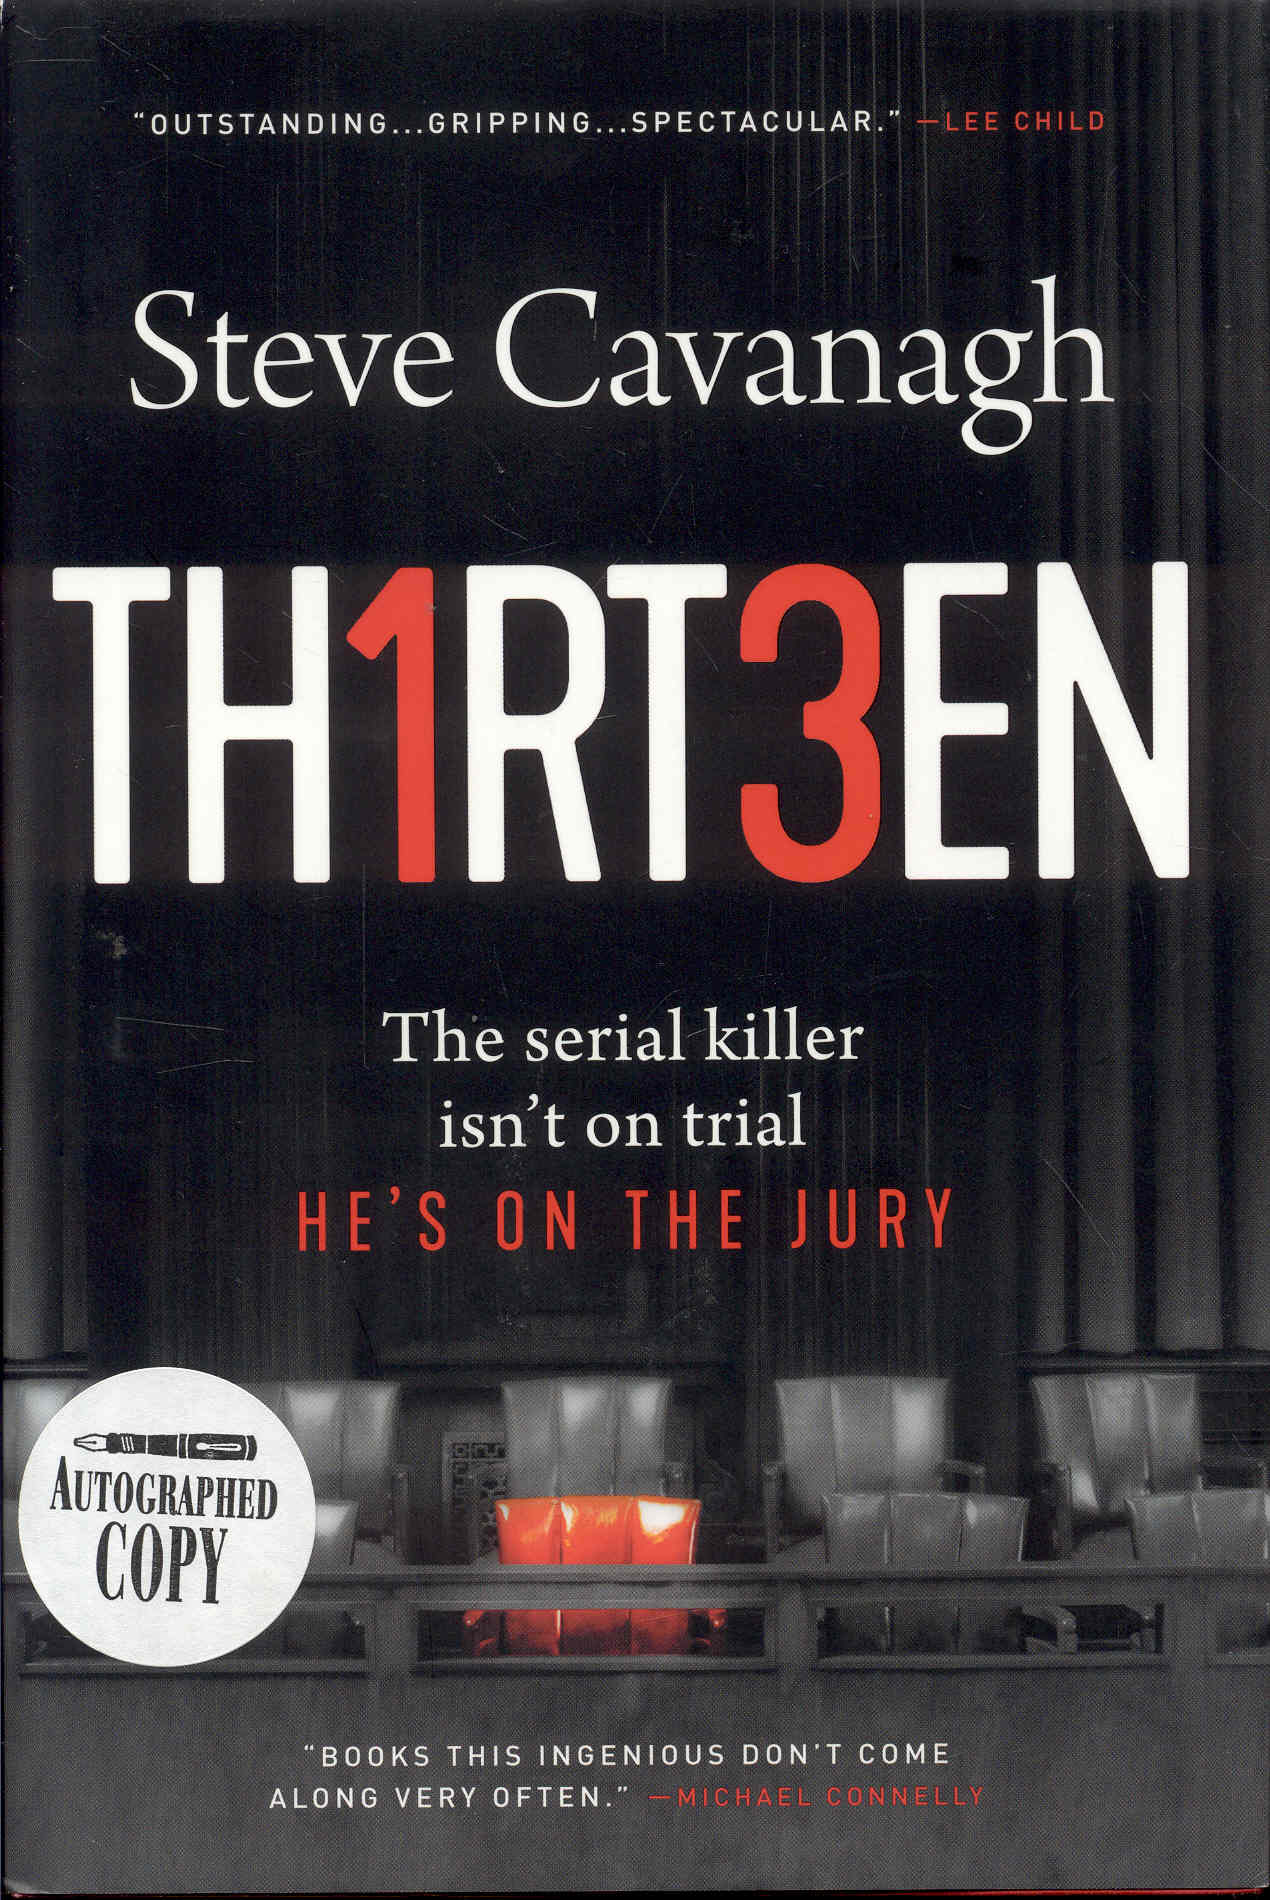 Image for Thirteen (TH1RTE3N)